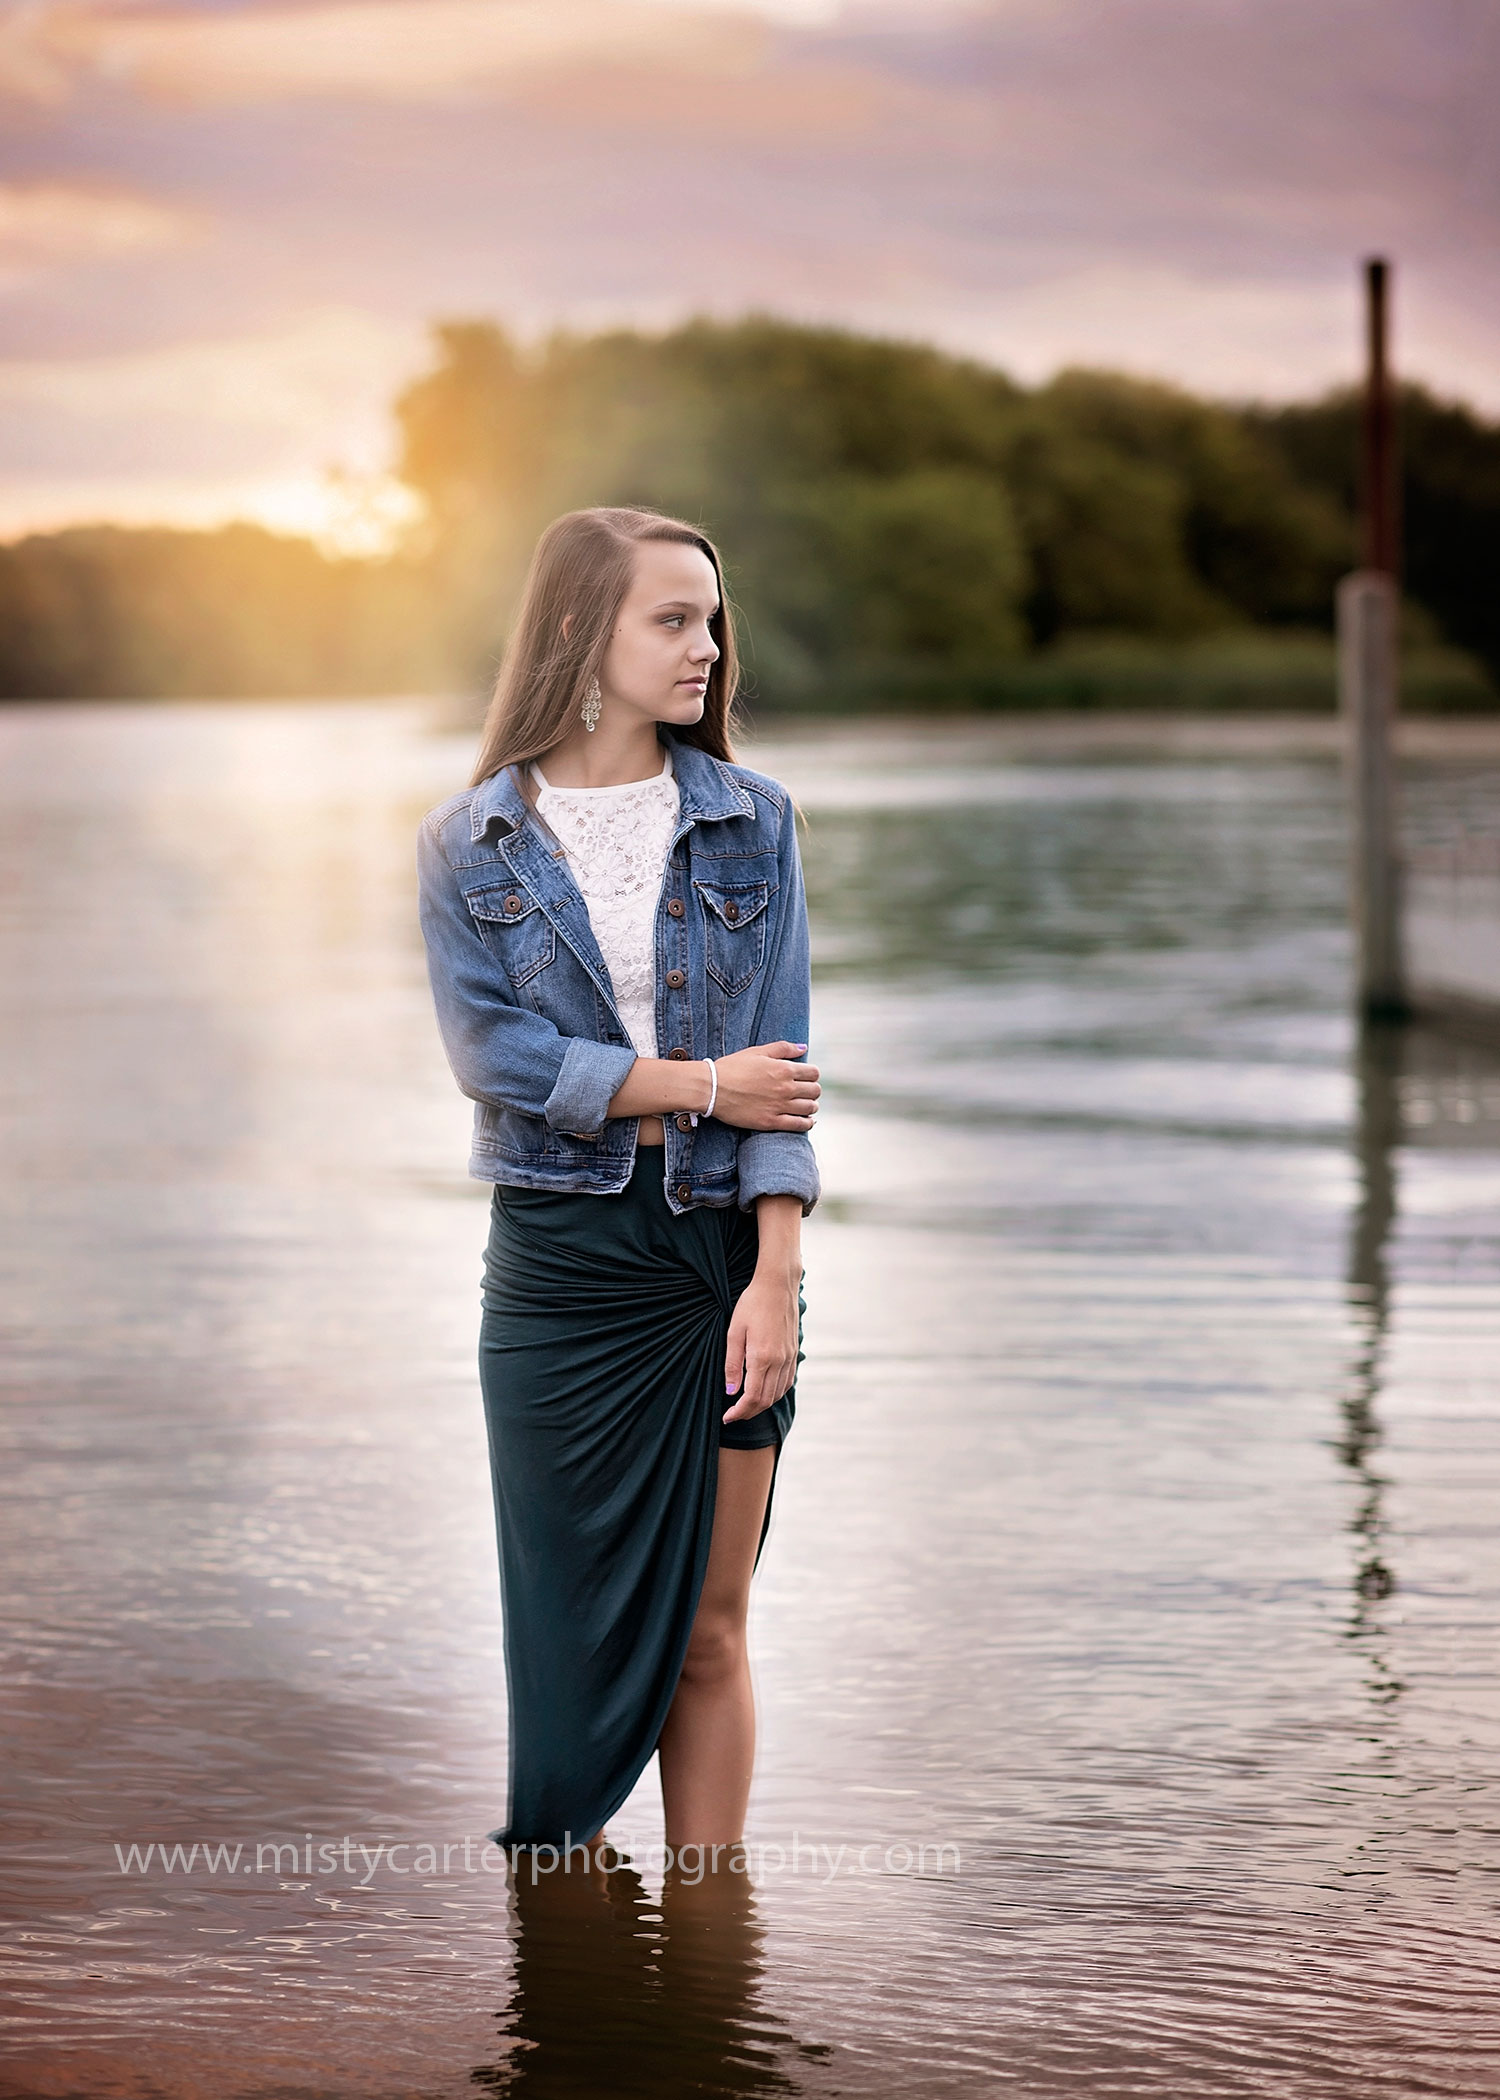 senior pictures misty carter photography cary il